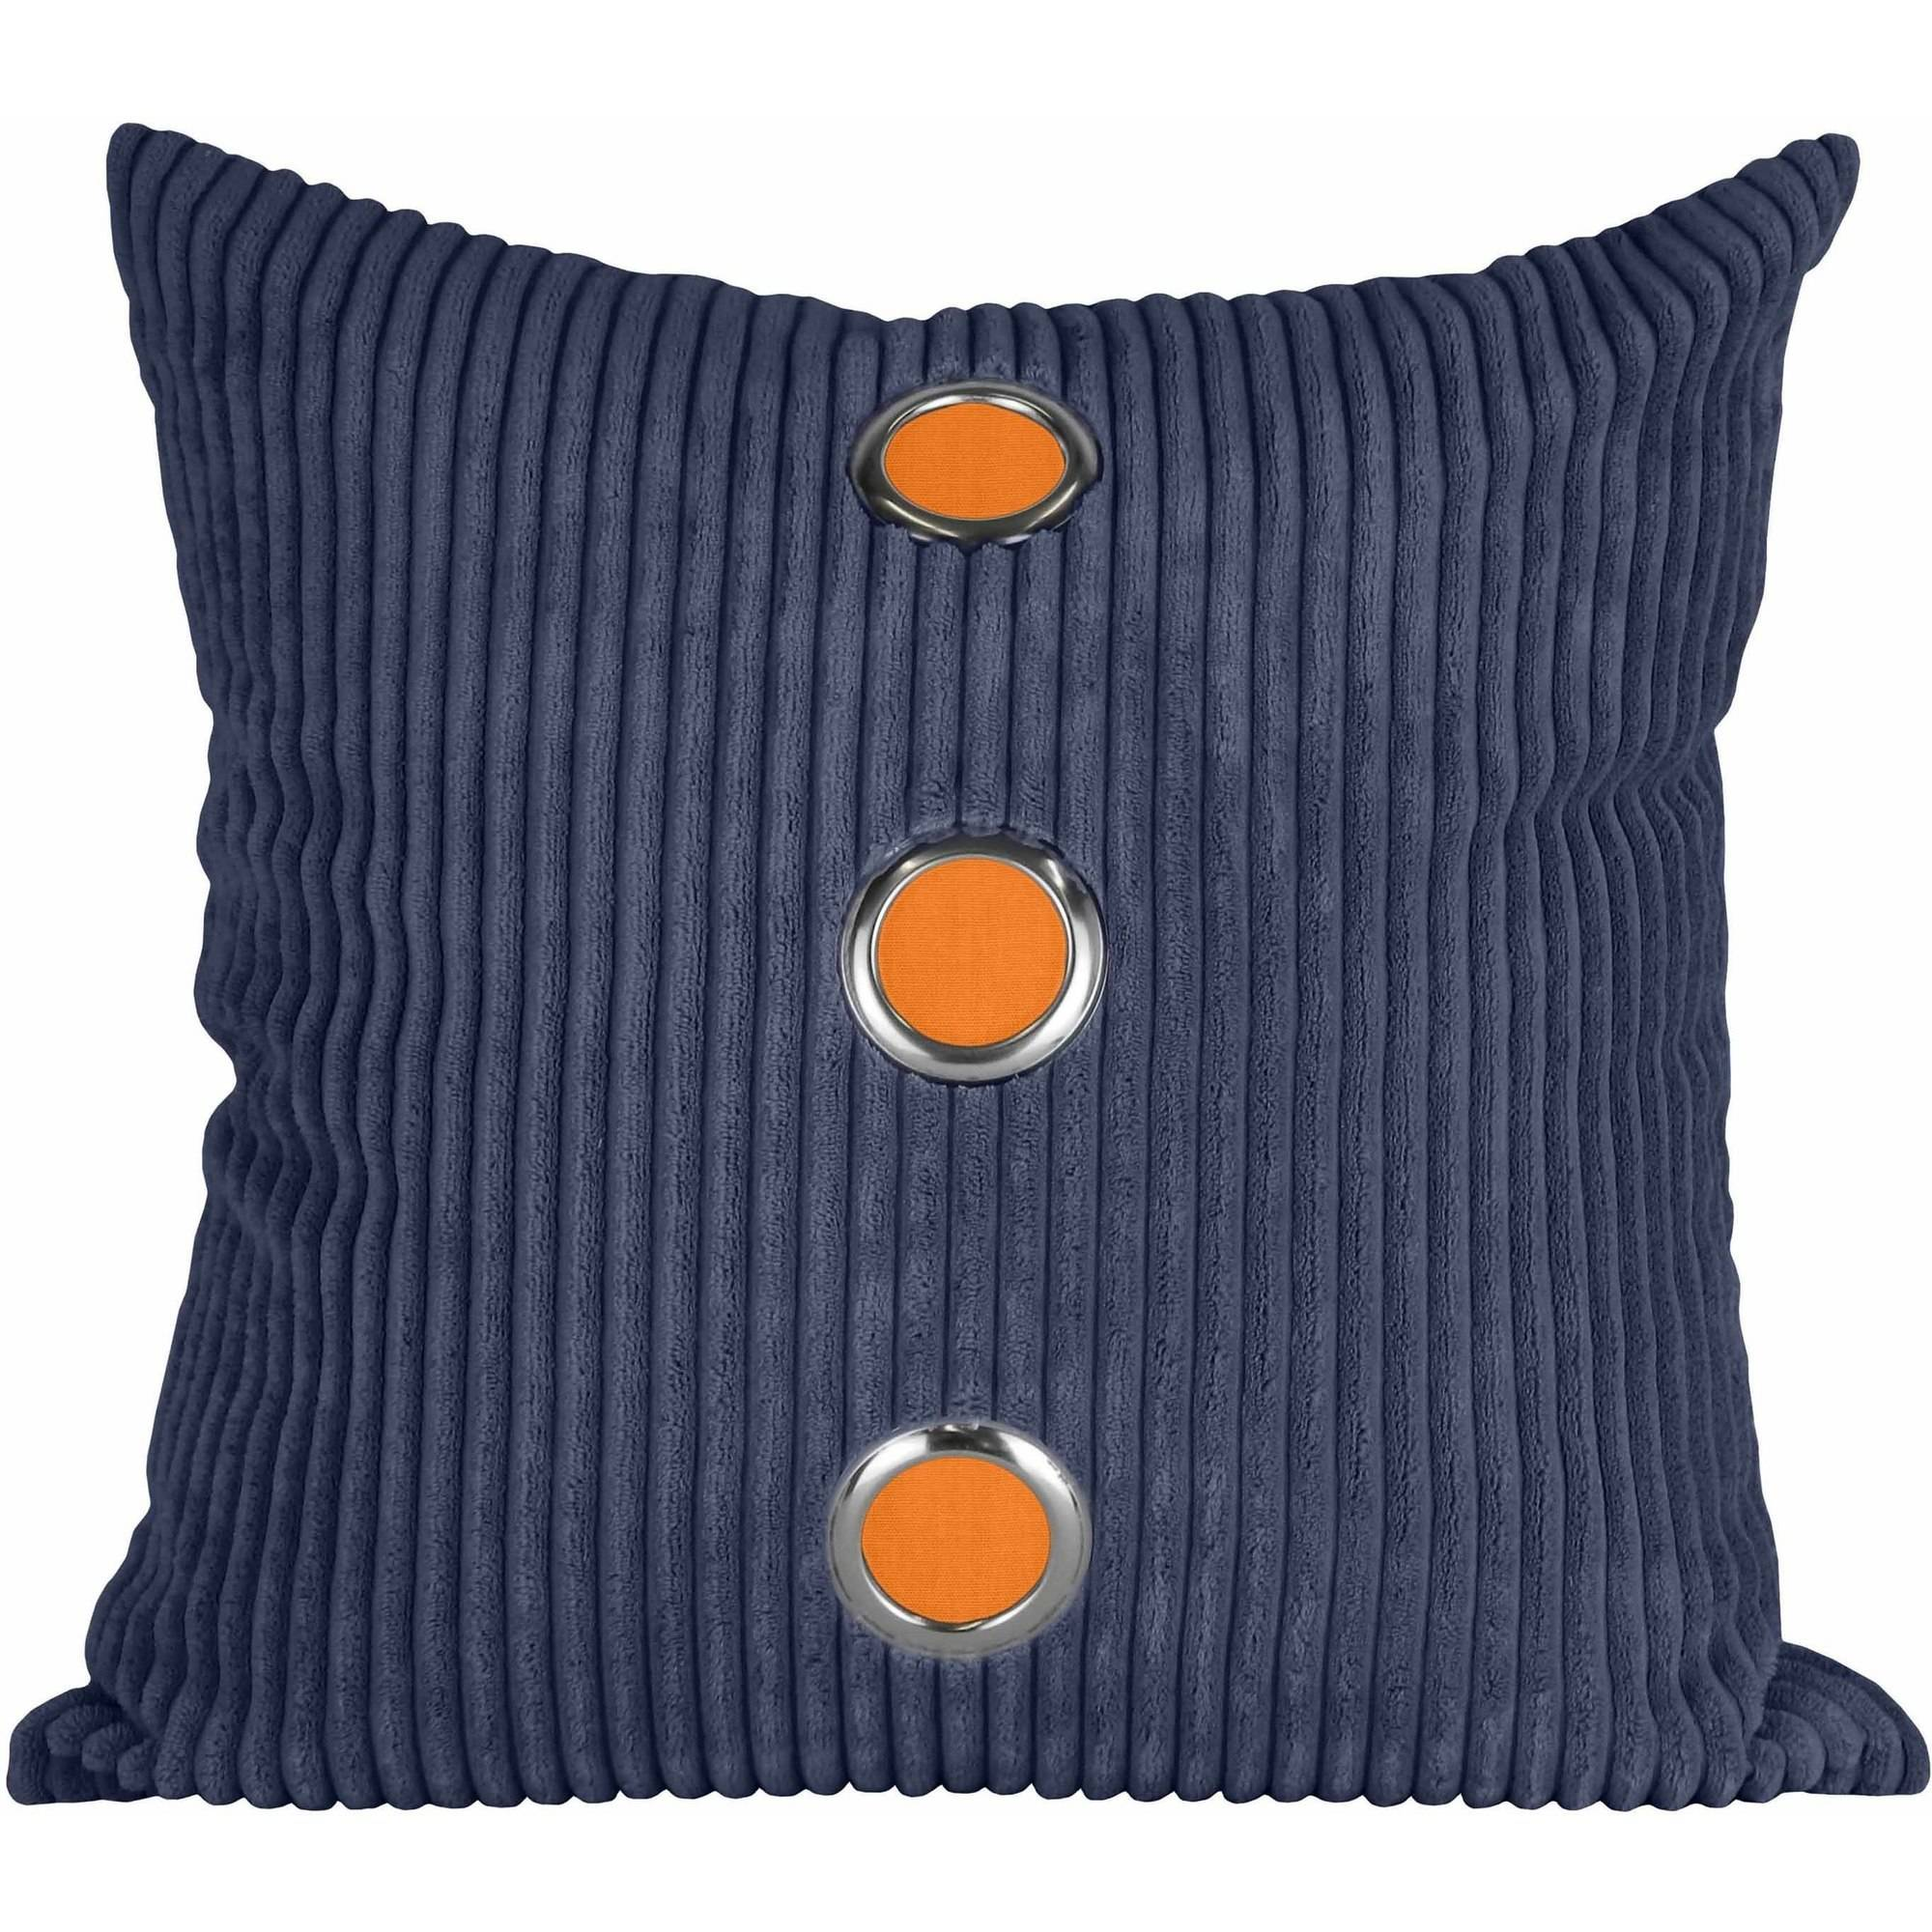 Better Homes and Gardens Navy Corduroy Stoplight Pillow